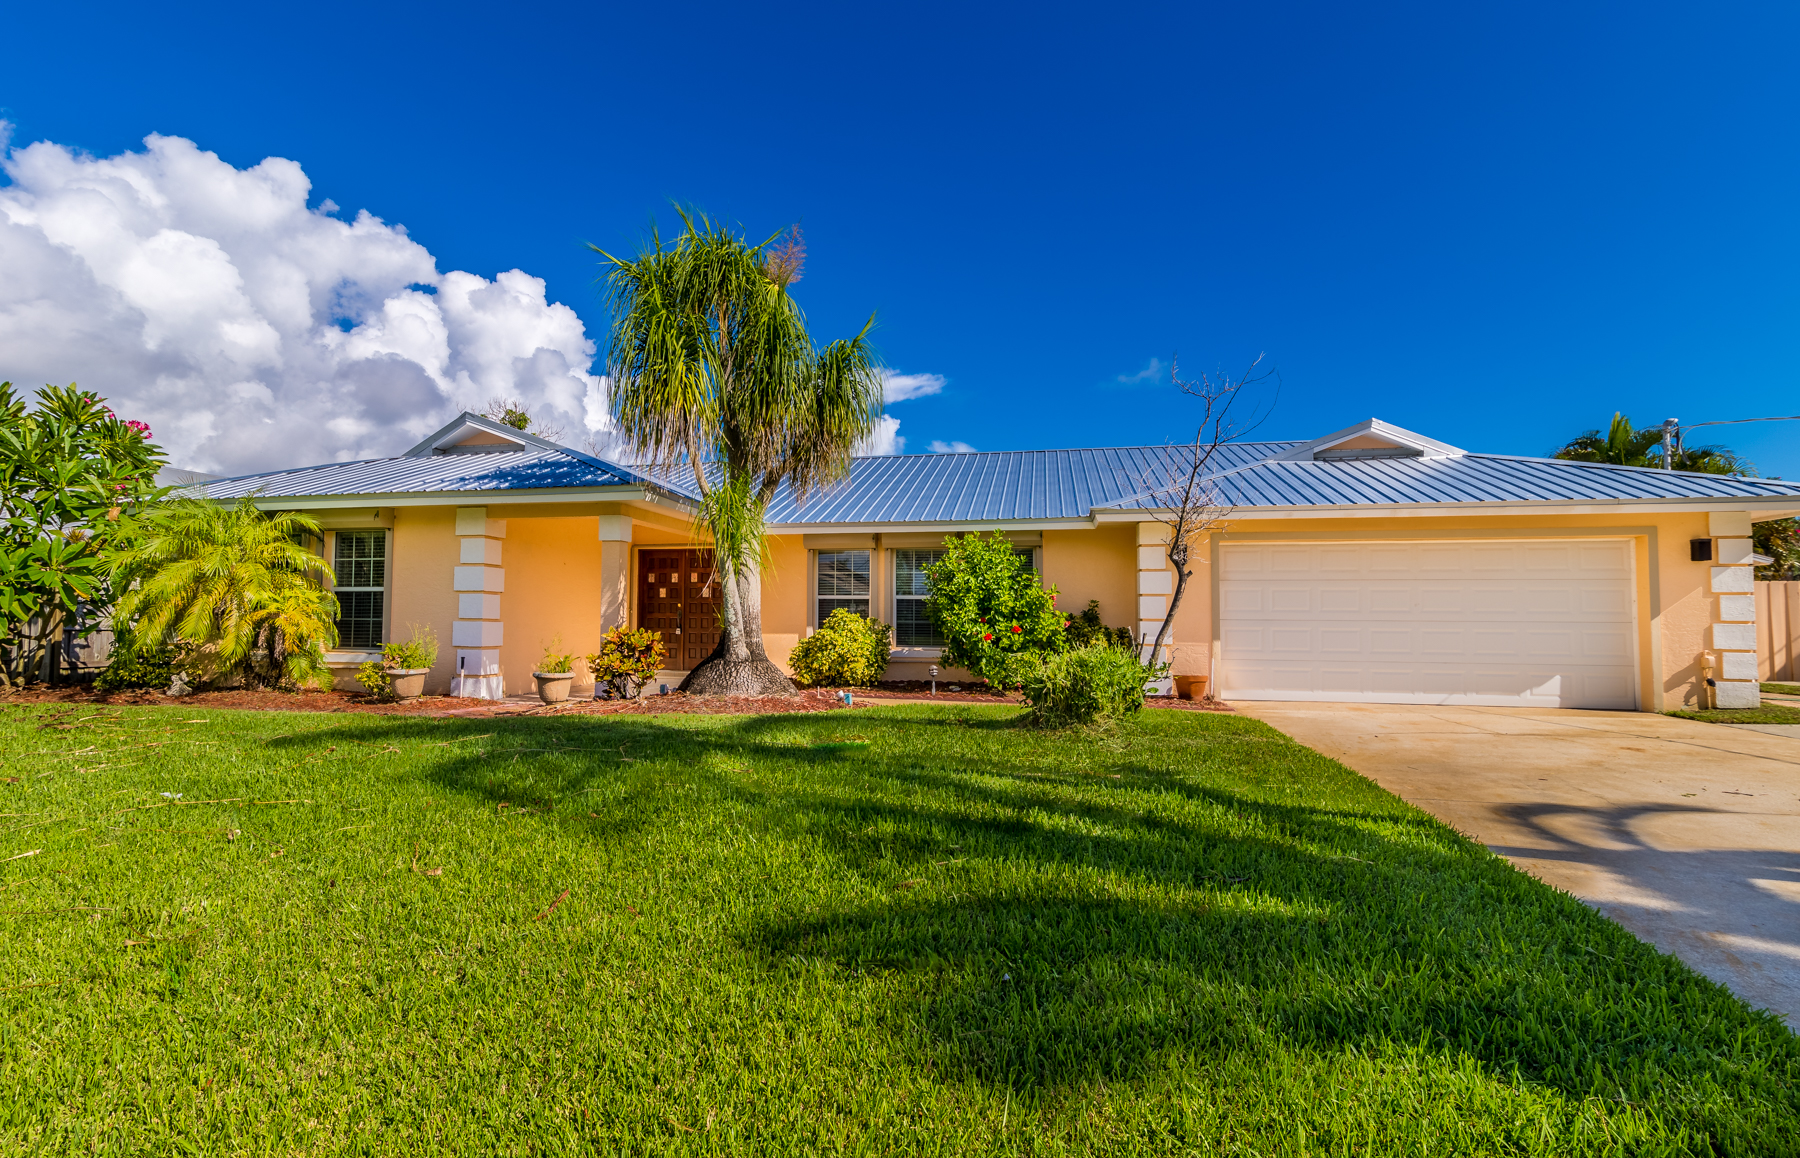 Canal Front Home with Pool and Boat House 290 Hiawatha Way Melbourne Beach, Florida 32951 Vereinigte Staaten